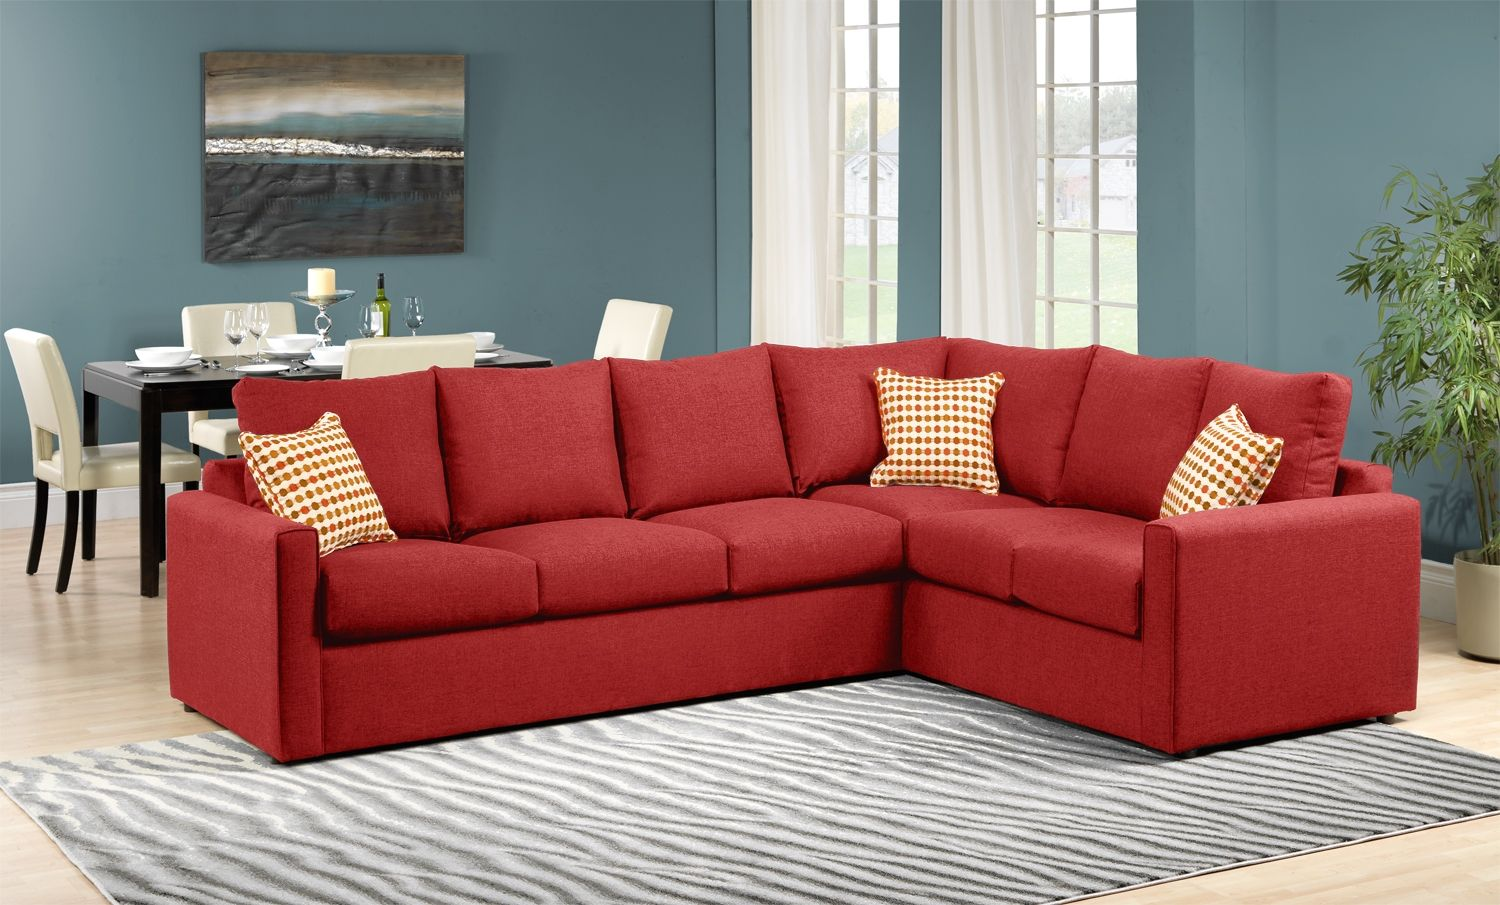 Delicieux Athina 2 Piece Left Facing Queen Sofa Bed Sectional   Cherry